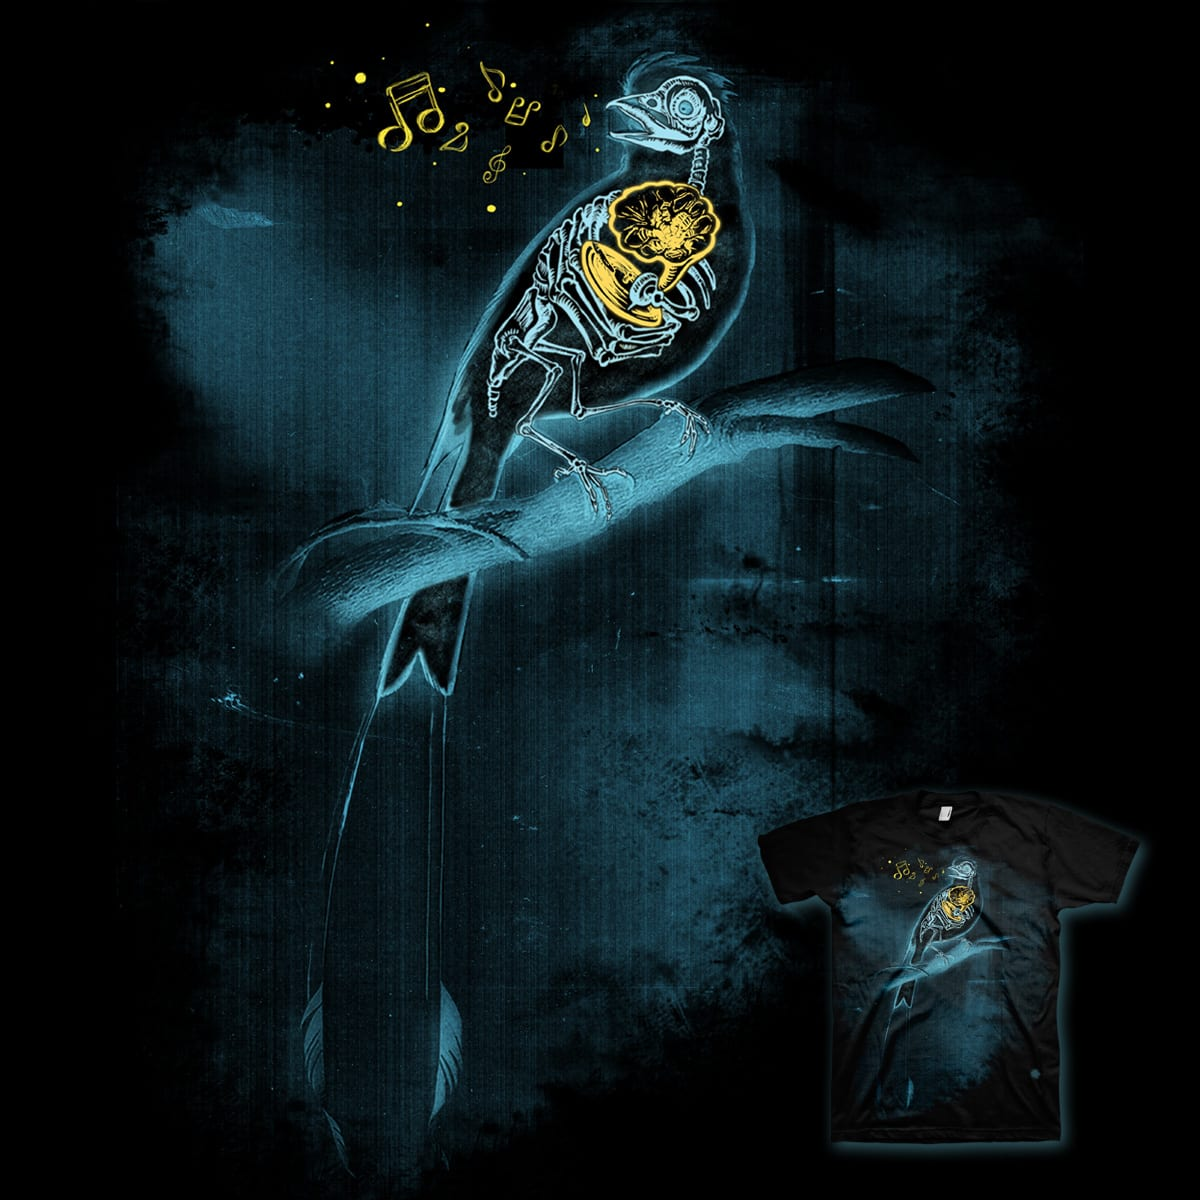 X-RAY of a Melody by opippi and GUTO_SZA on Threadless